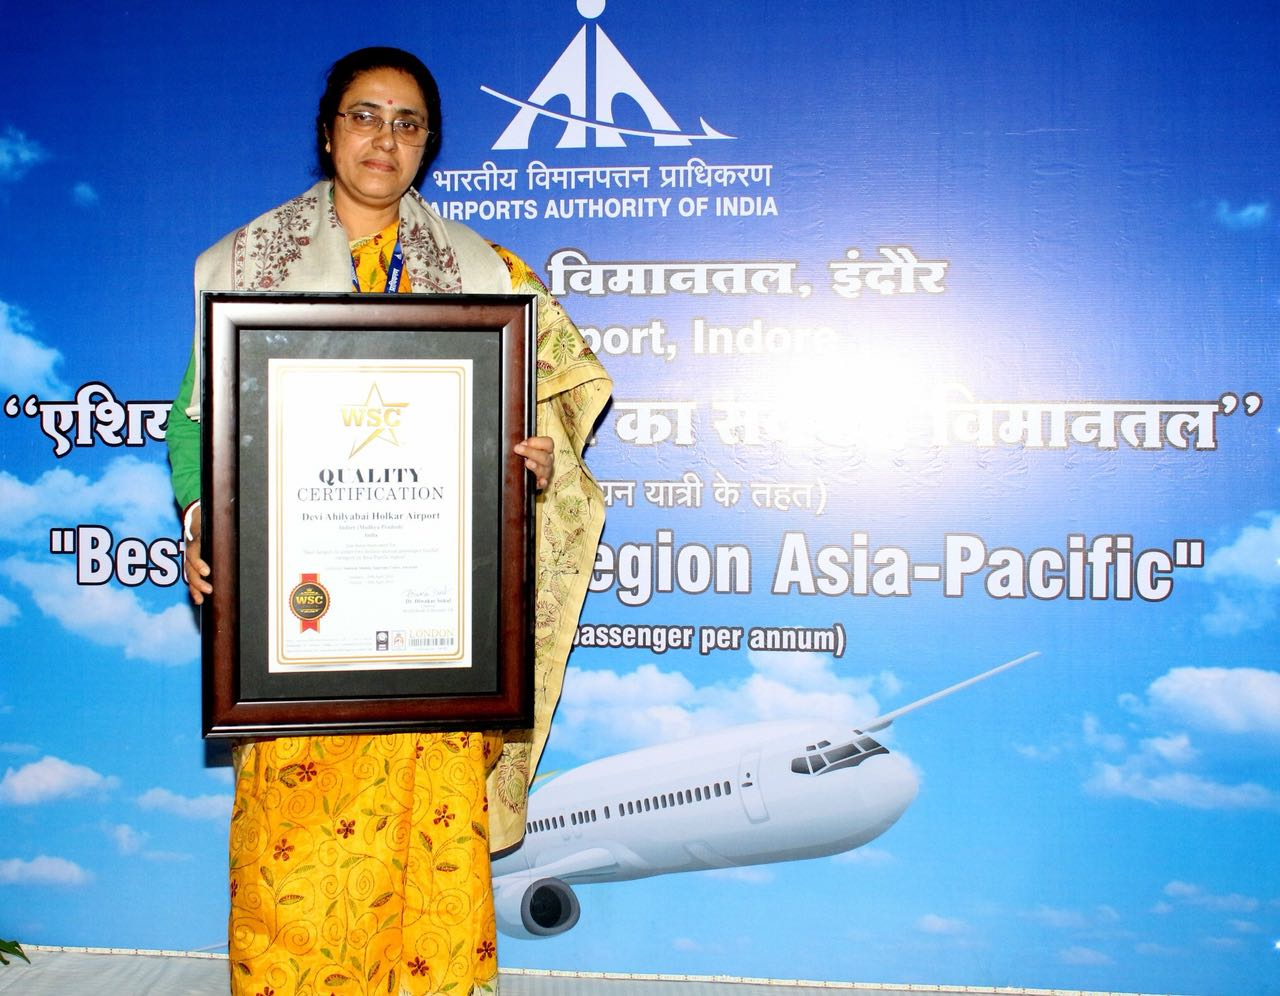 Devi Ahilyabai Holkar Airport, Indore (India) Bags World Standardization Certification from London